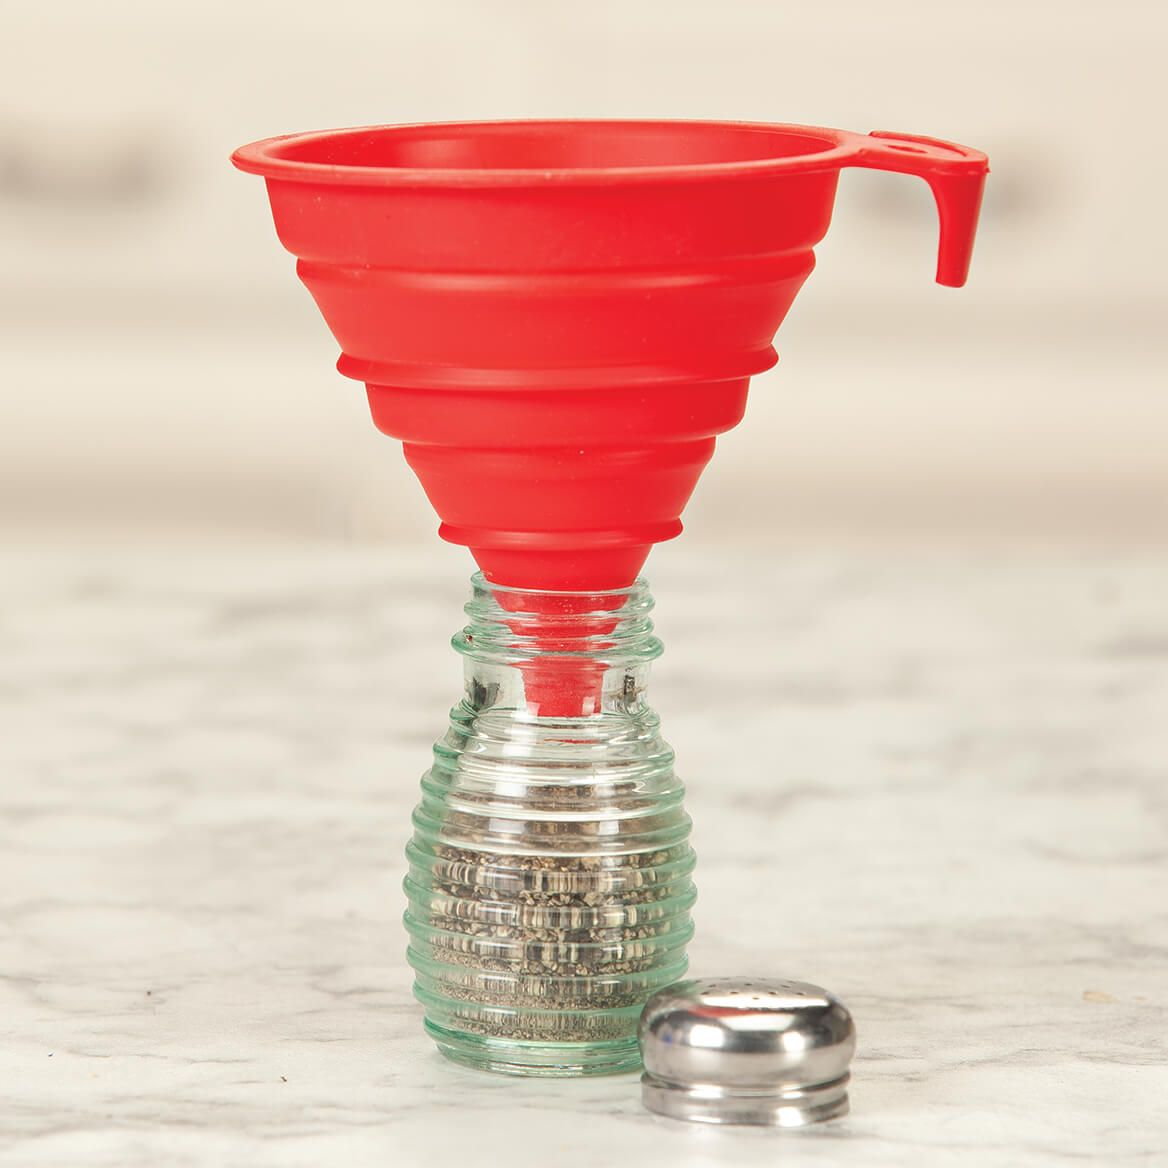 Collapsible Silicone Funnels Set of 2 by Chef's Pride-371270